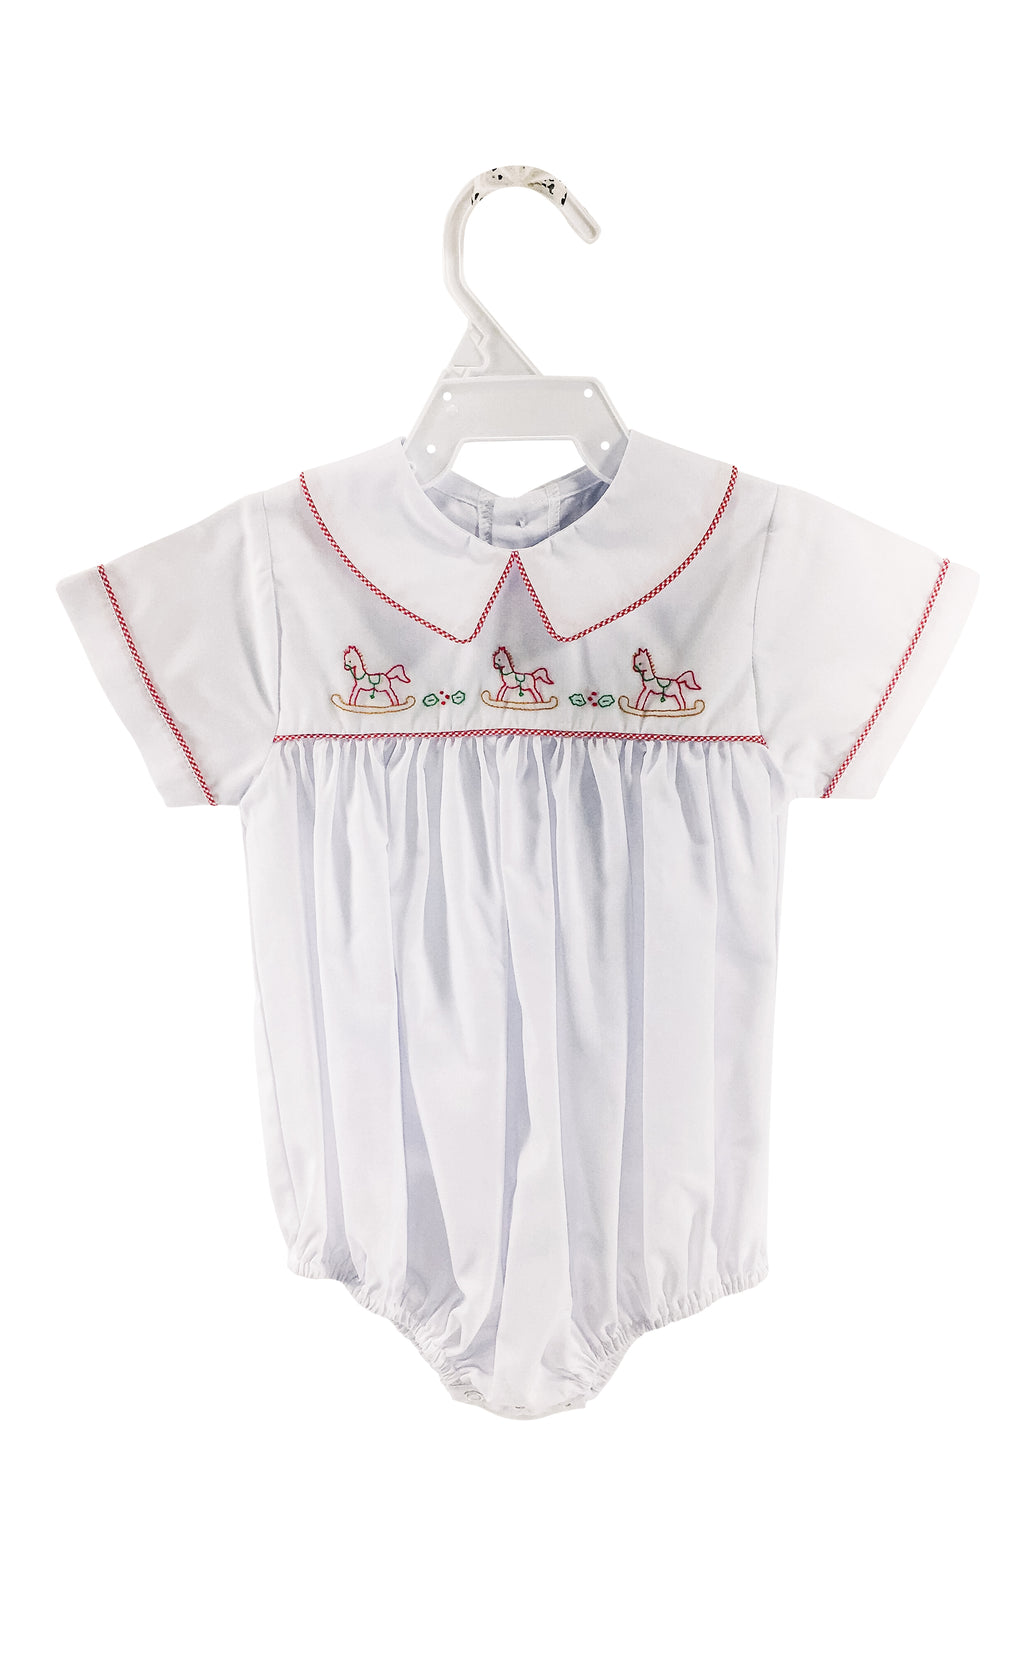 Bubble White/Red Check w/ Rocking Horse - Born Childrens Boutique